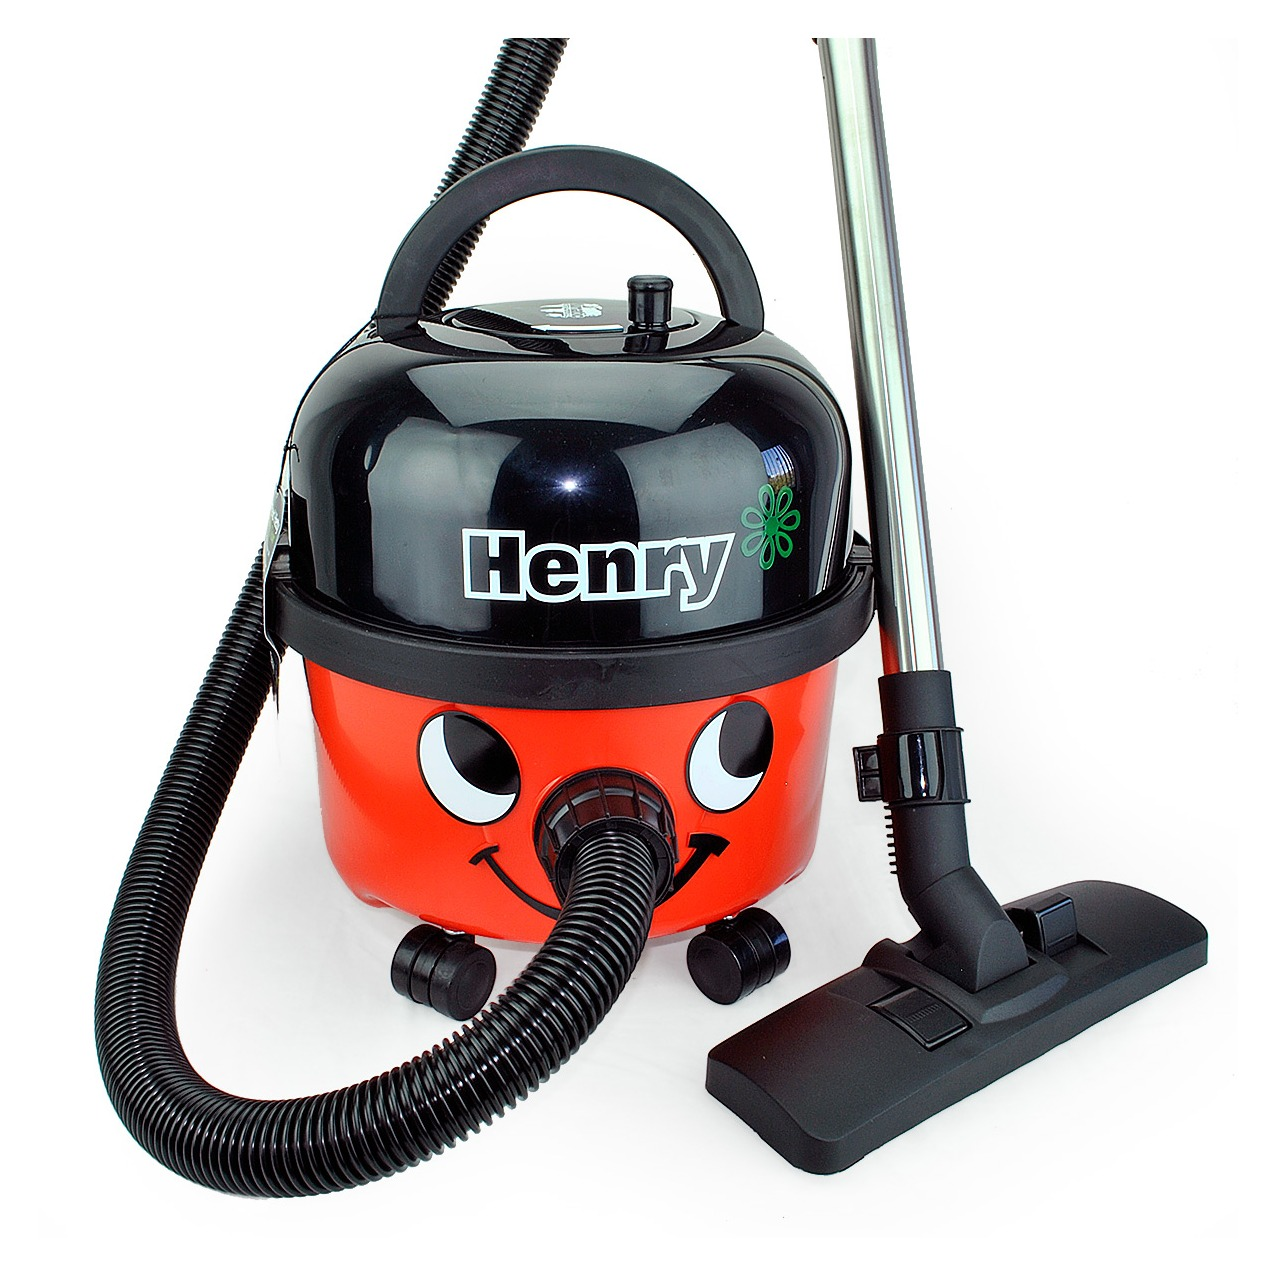 https://www.speedyvacuum.ca/public/uploads/products_photo/5b9fd61a93c75.jpg